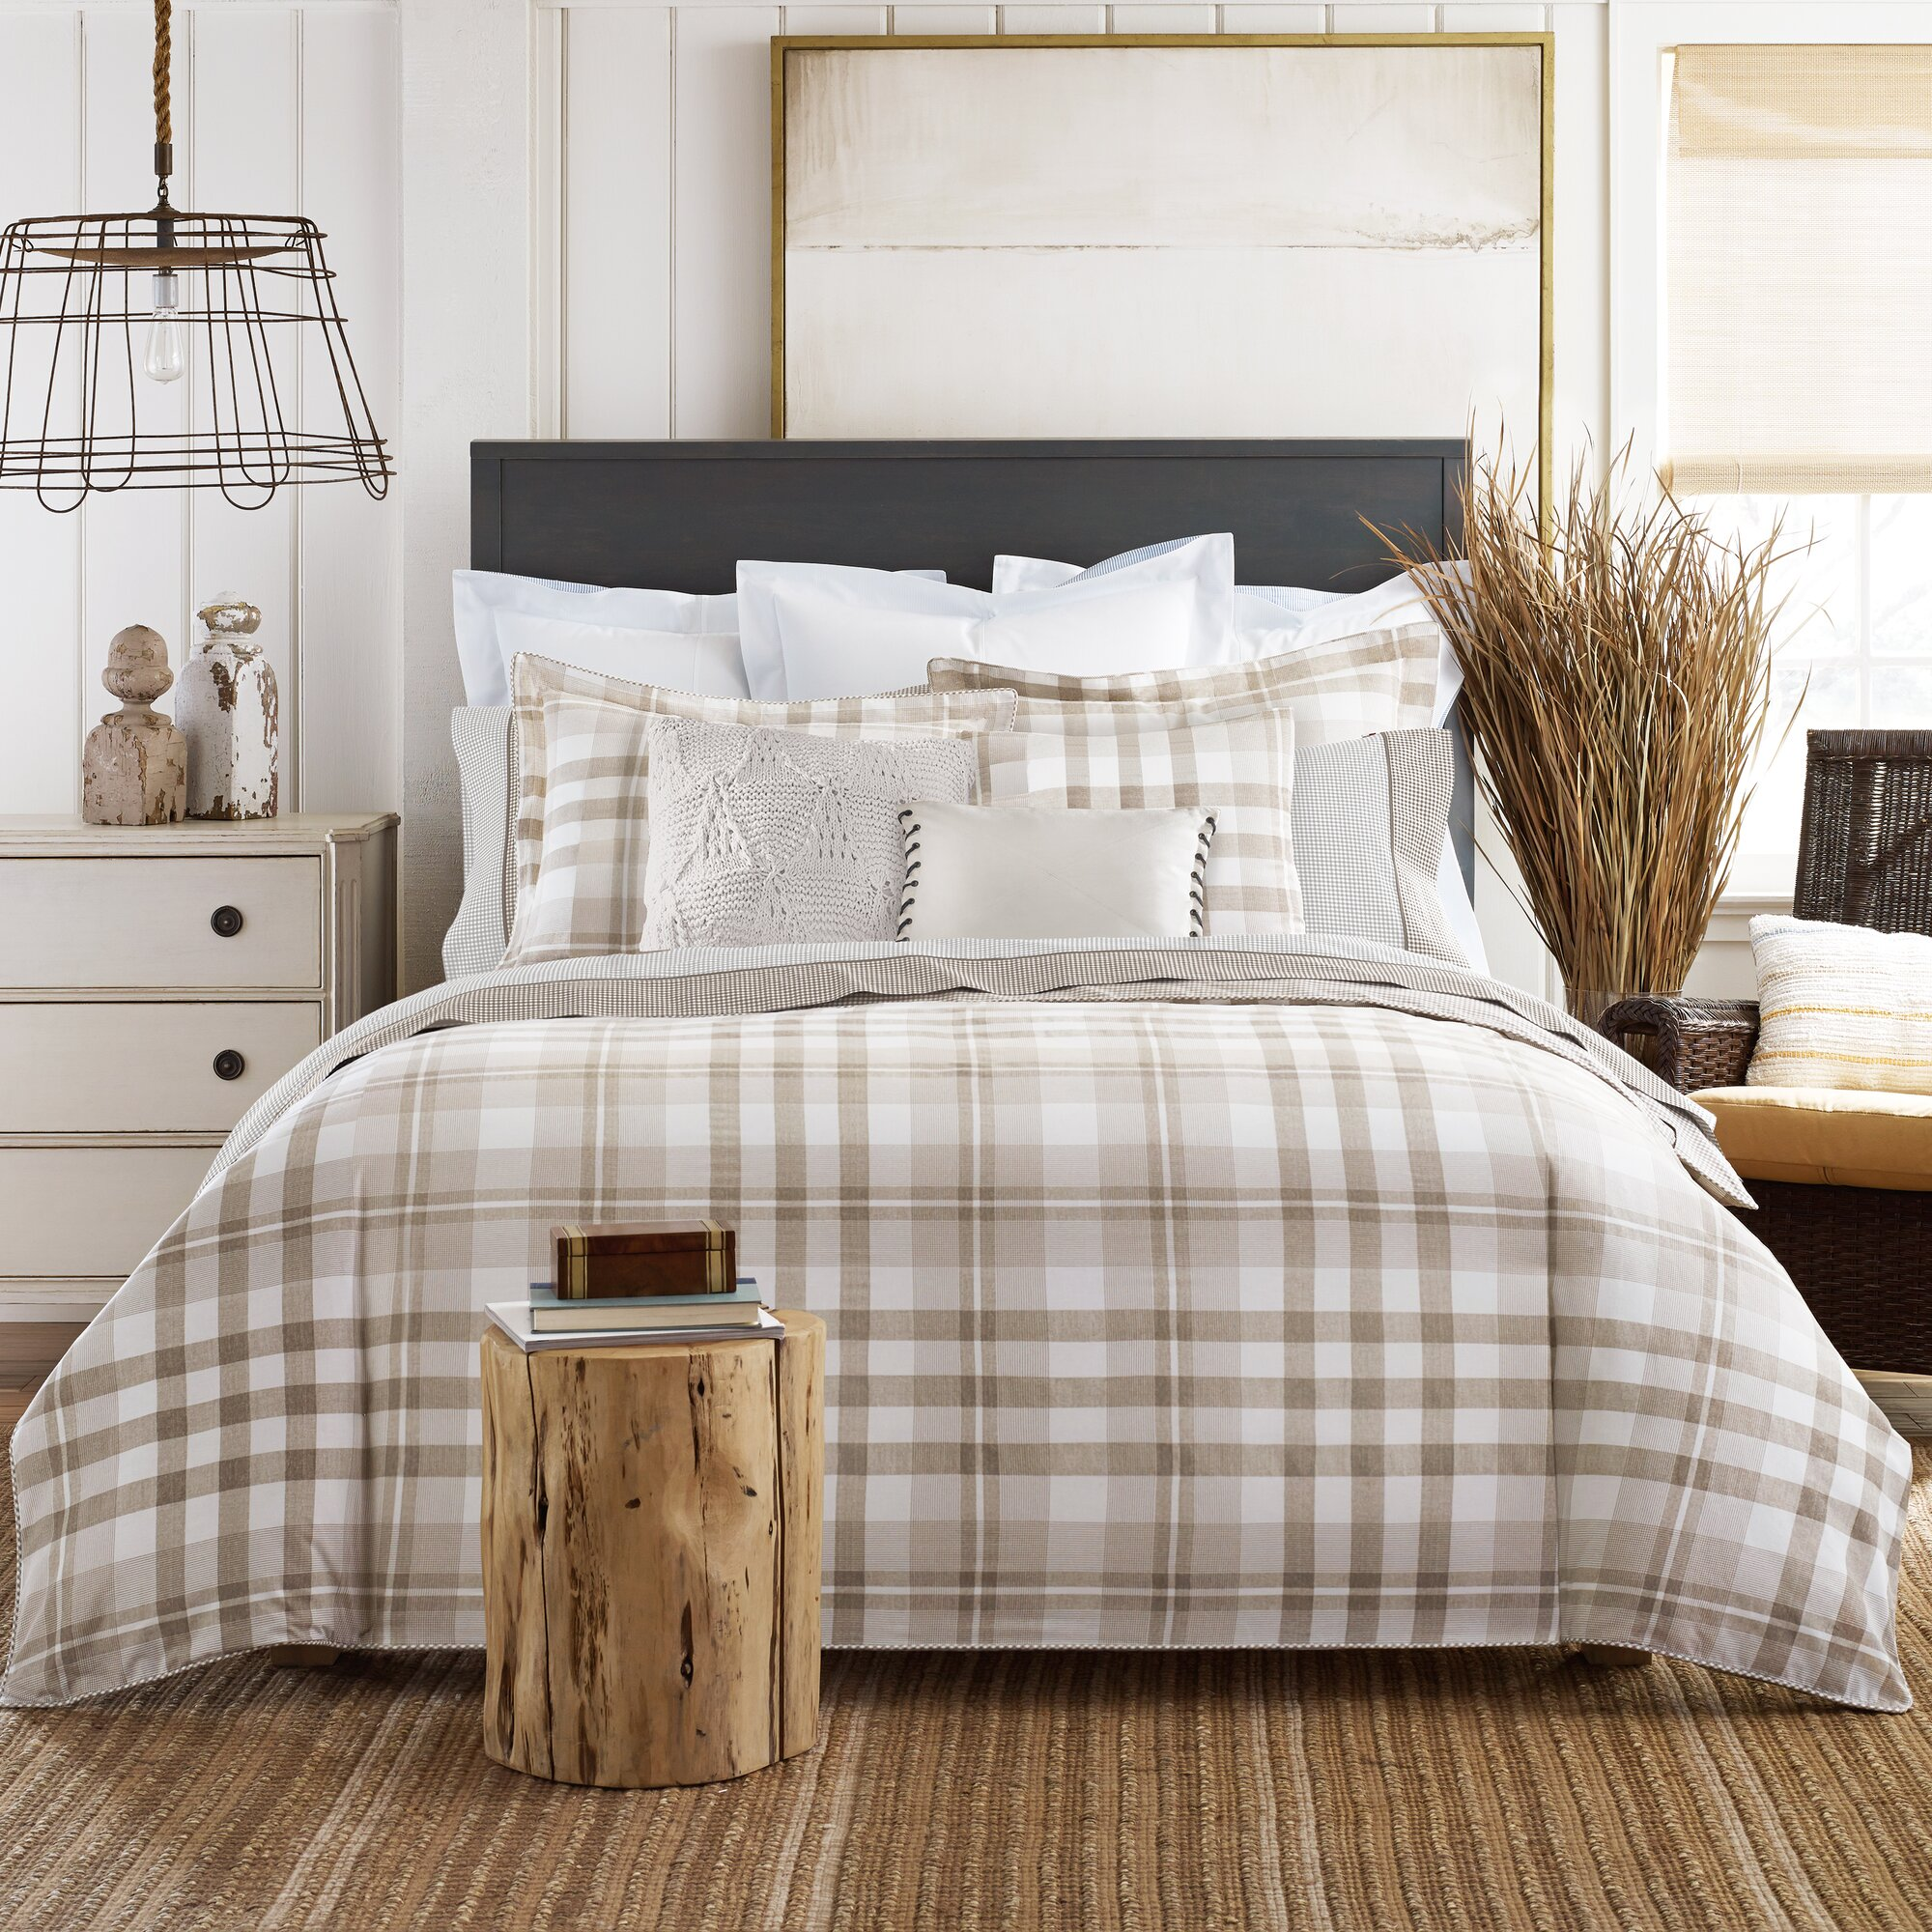 Tommy Hilfiger Range Plaid Comforter Collection Amp Reviews